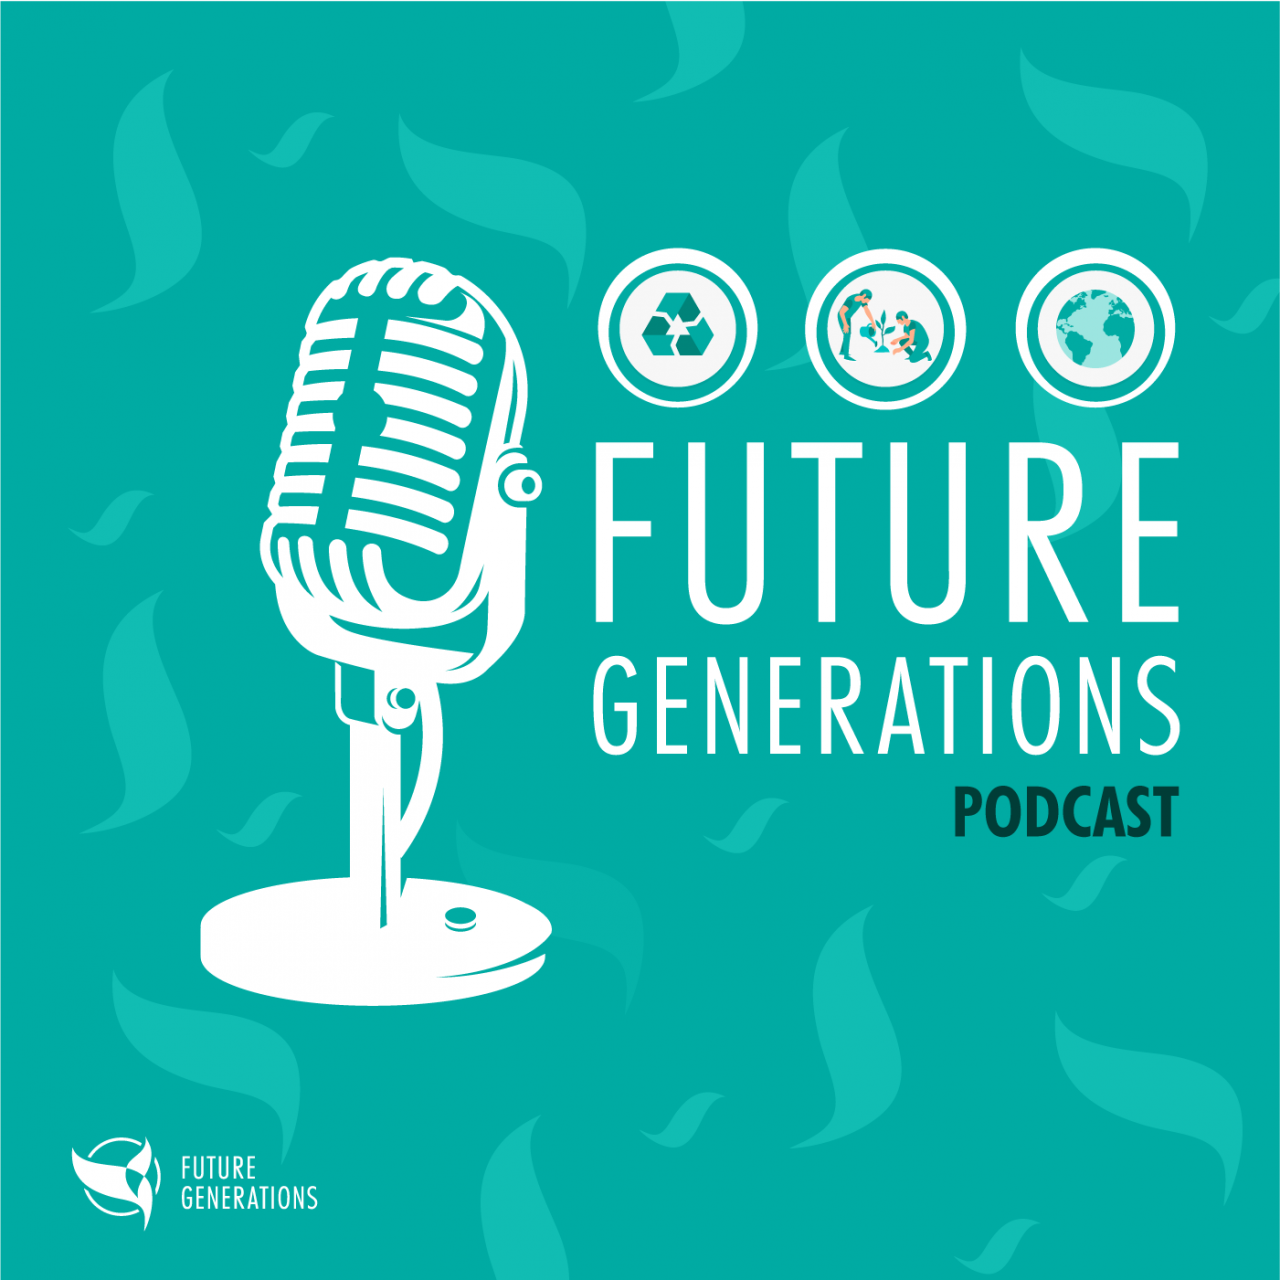 Future-Generation_podcast-visual-1280x1280.png